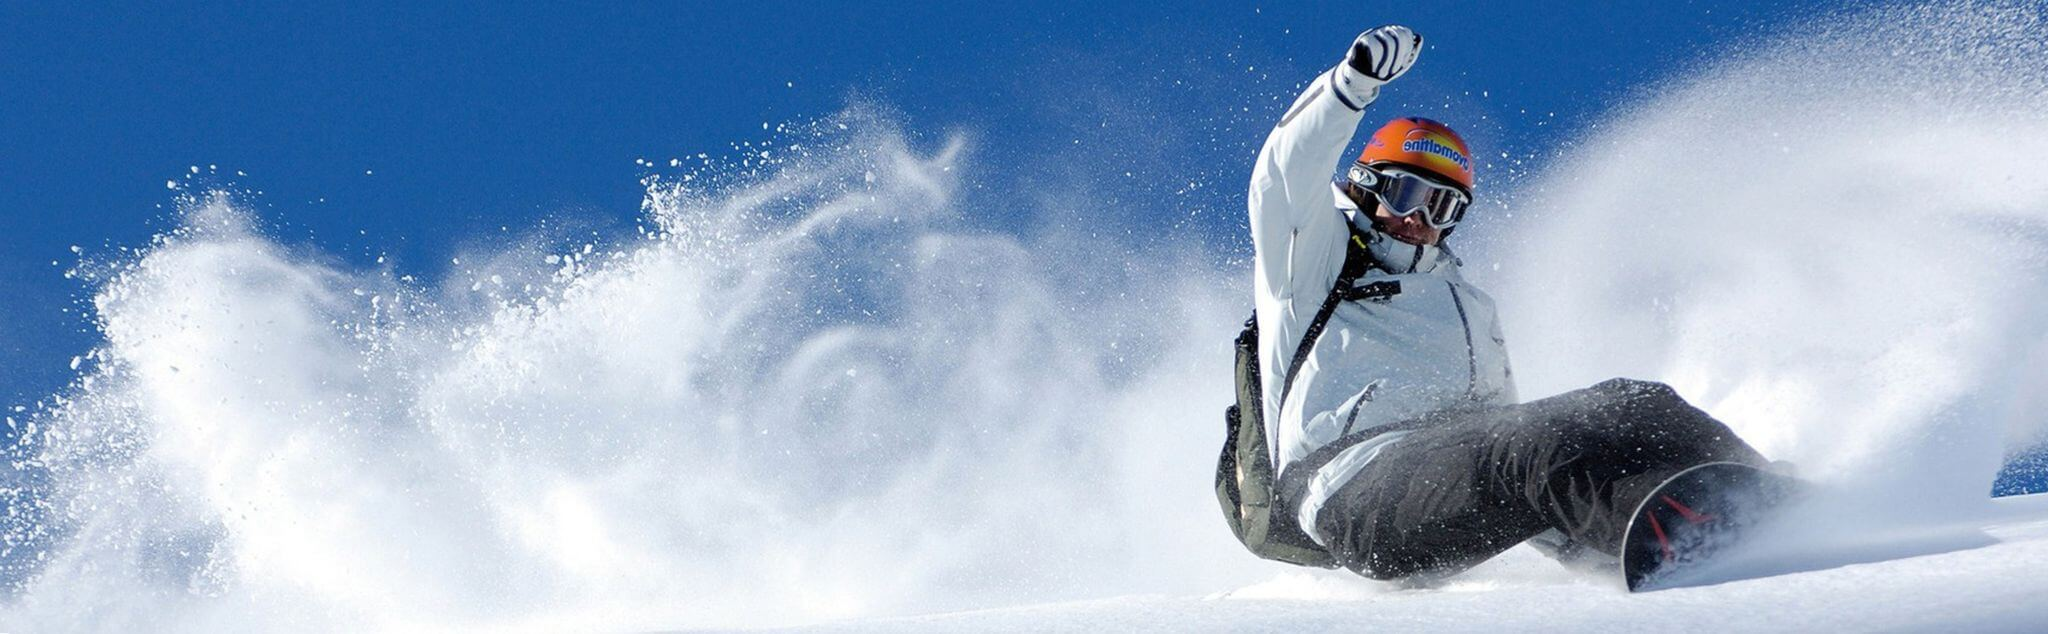 Snowboard a Pont Canavese